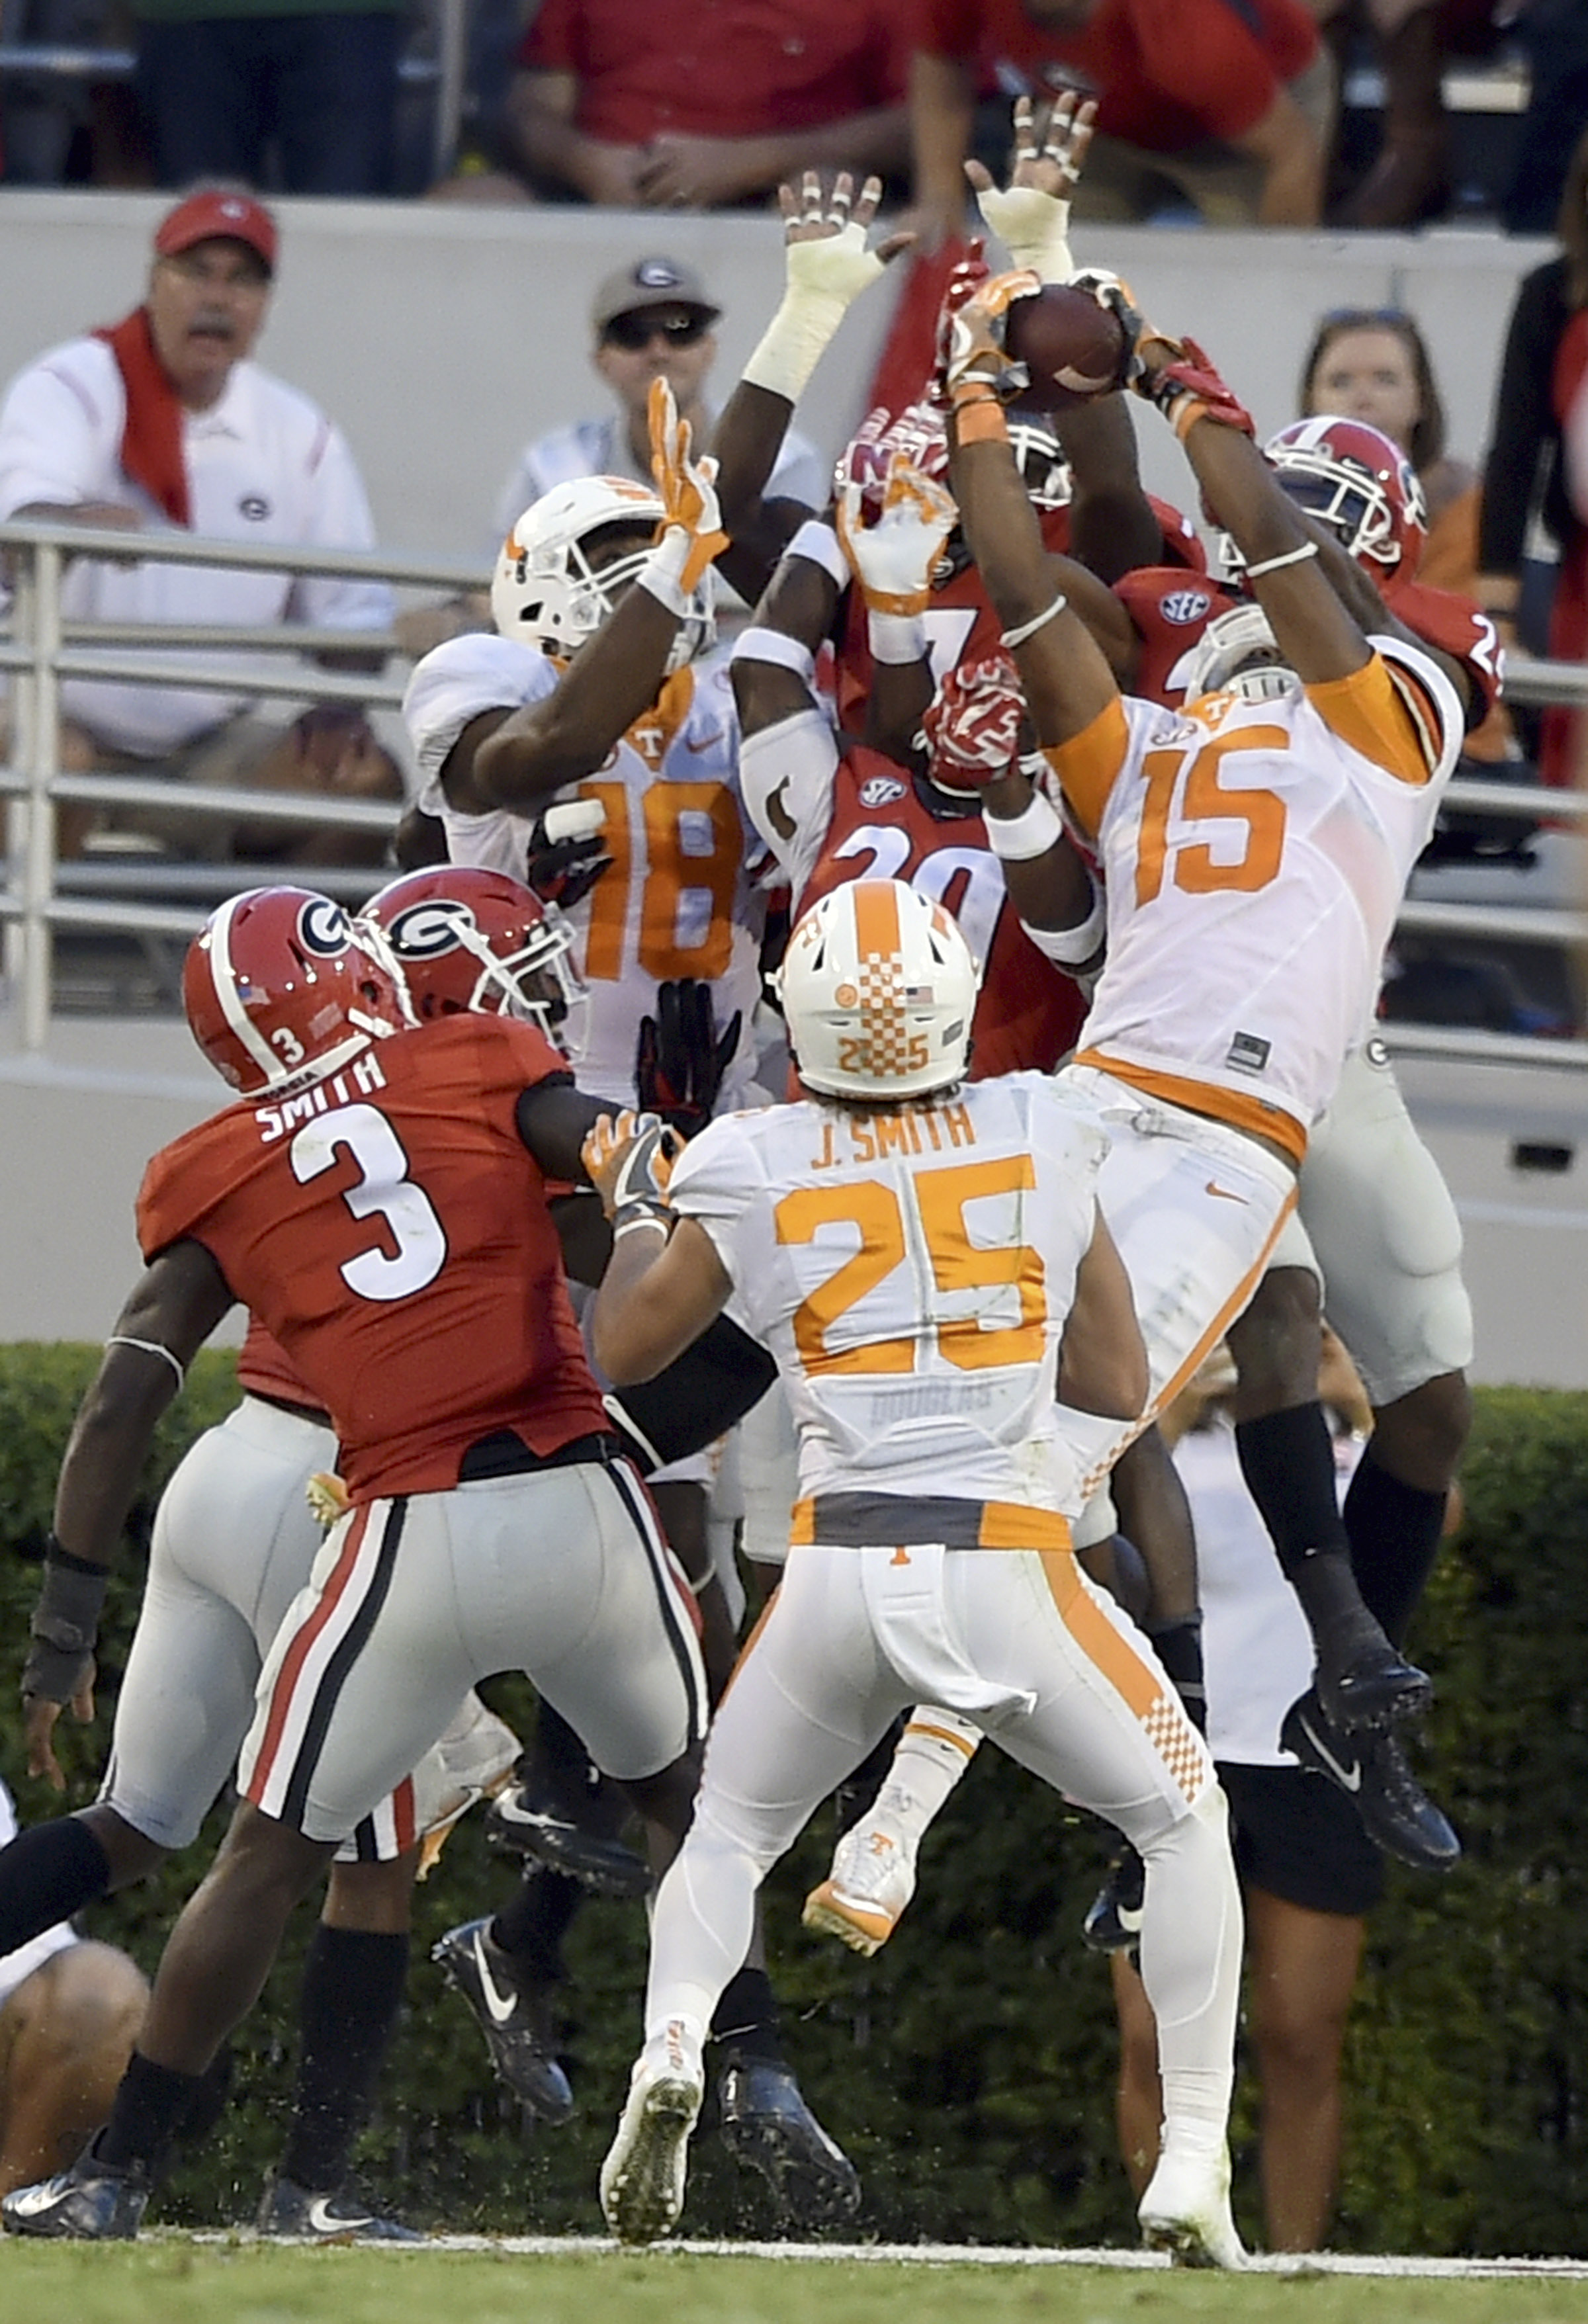 Tennessee wide receiver Jauan Jennings (15) leaps in front of Georgia safety Dominick Sanders for the game winning touchdown as time expires during an NCAA college football game, Saturday, Oct. 1, 2016 in Athens, Ga. (Brant Sanderlin/Atlanta Journal-Const